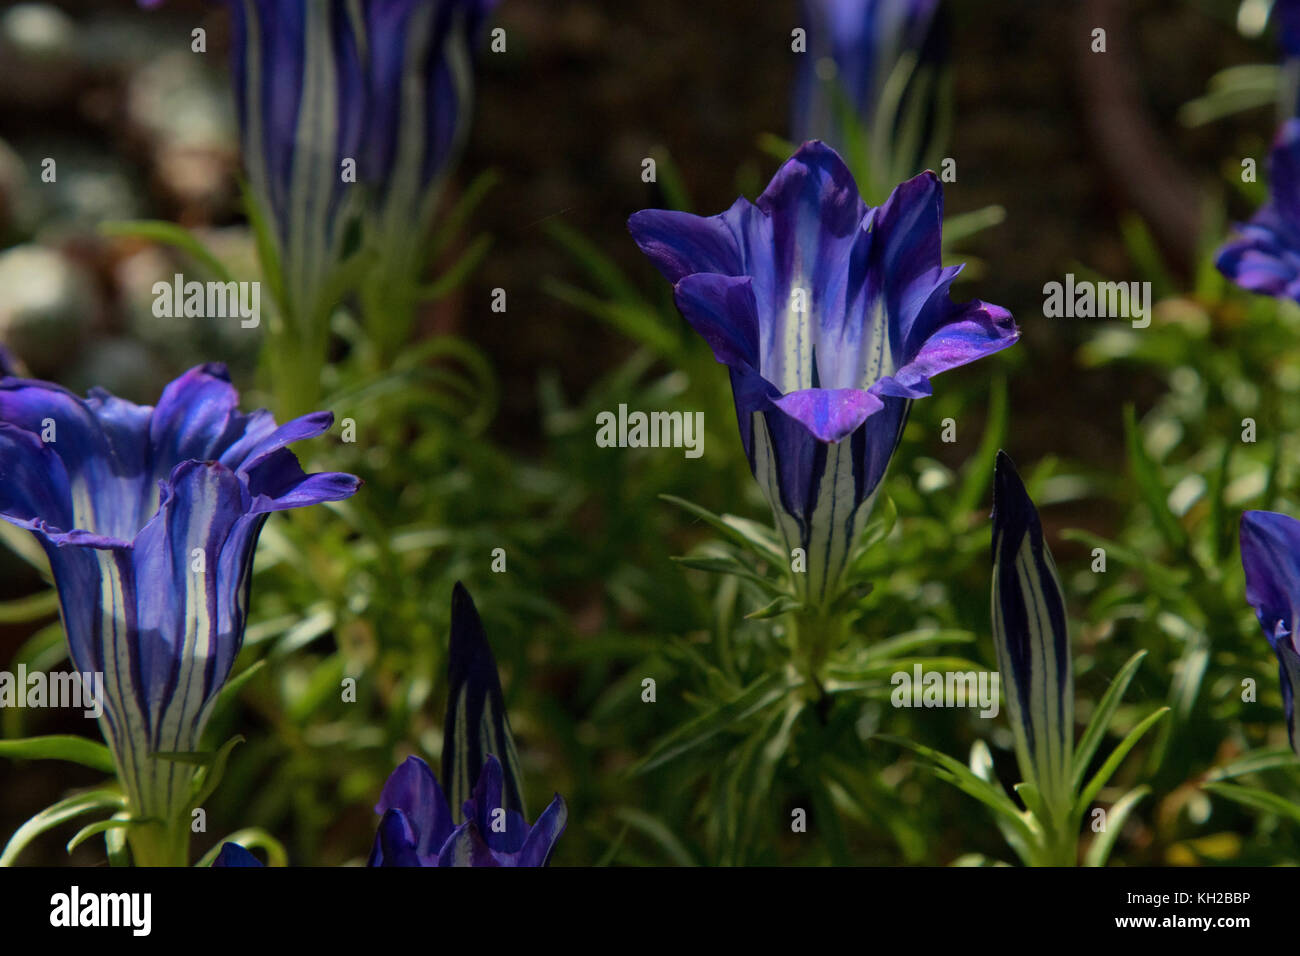 Gentiana blue silk flowers stock photo royalty free image gentiana blue silk flowers izmirmasajfo Gallery